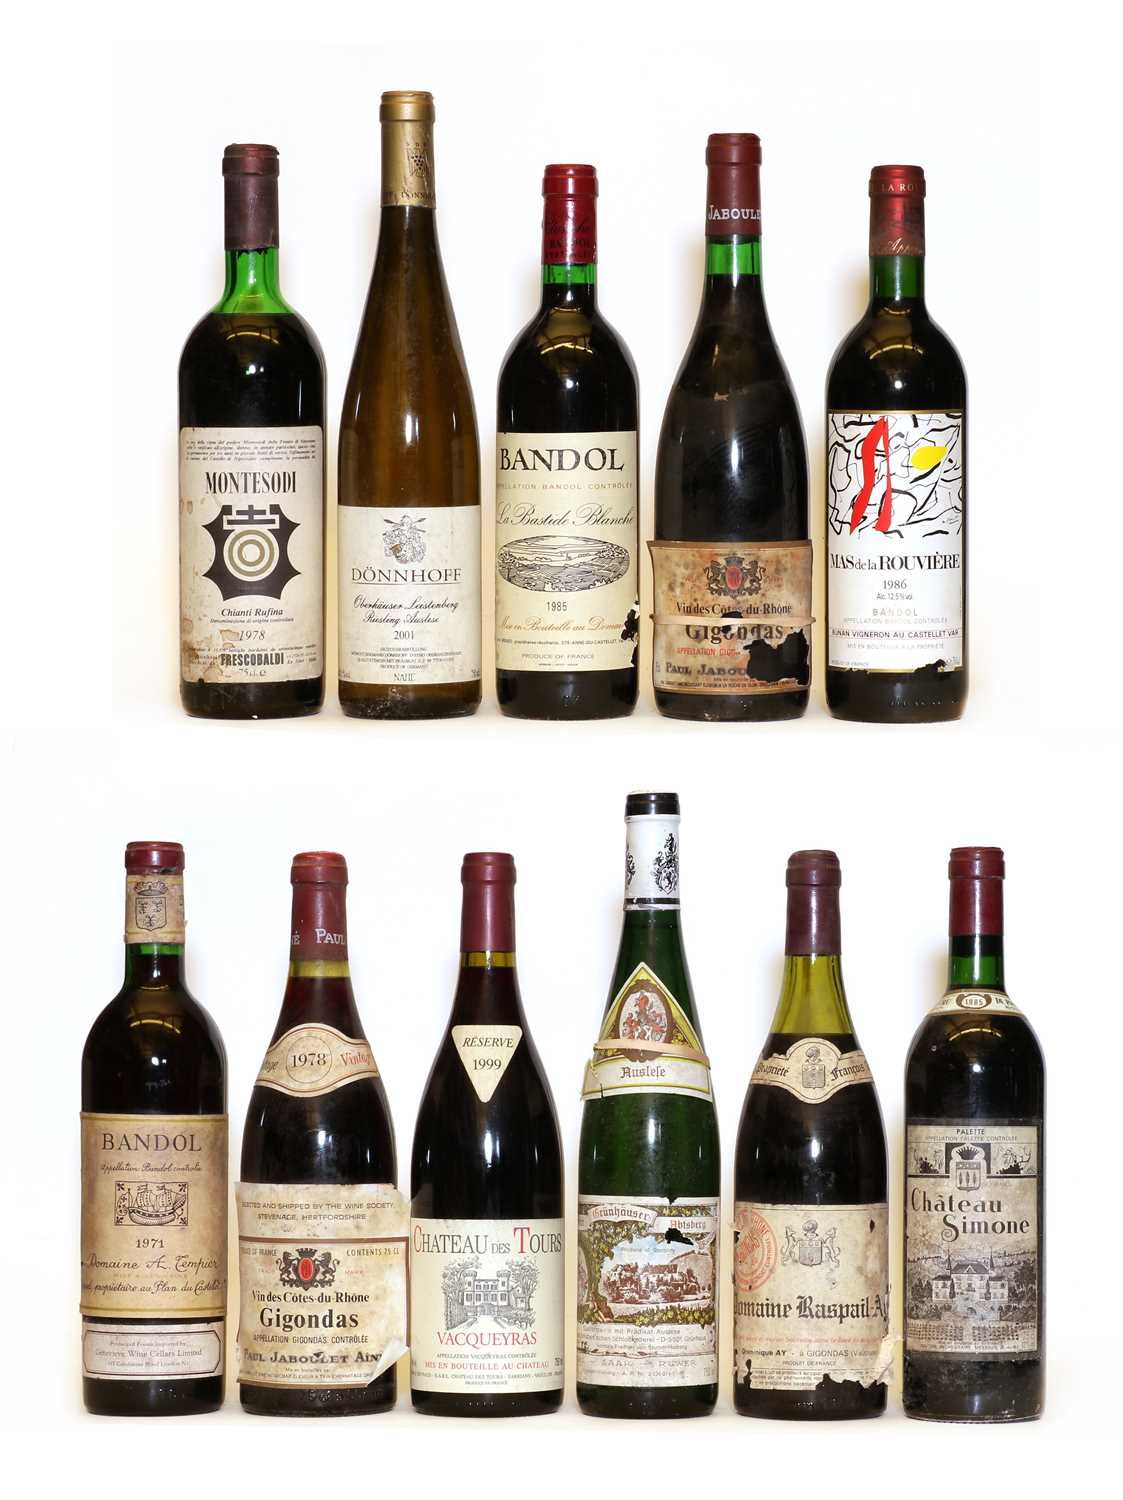 Miscellaneous wines: Bandol, Domaine A. Tempier, 1971, one bottle and ten various others